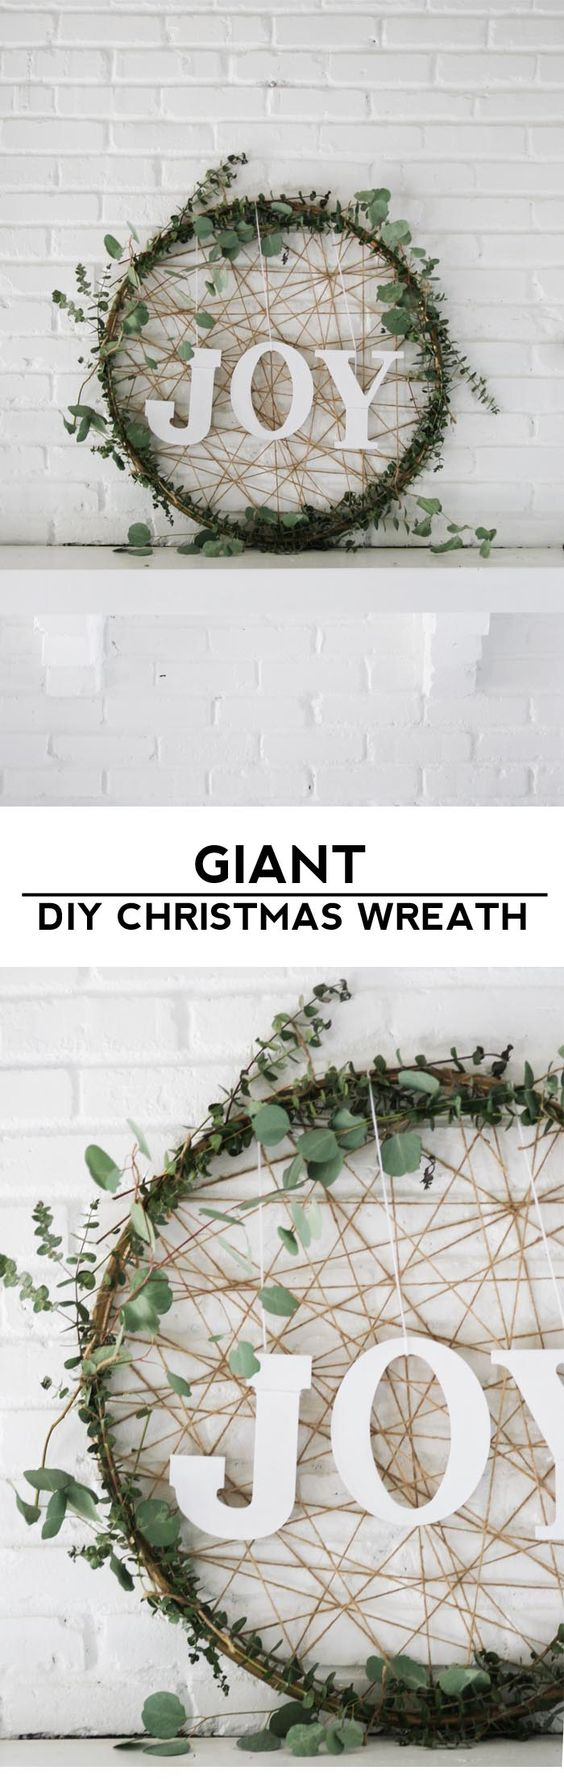 Giant DIY Christmas Wreath.